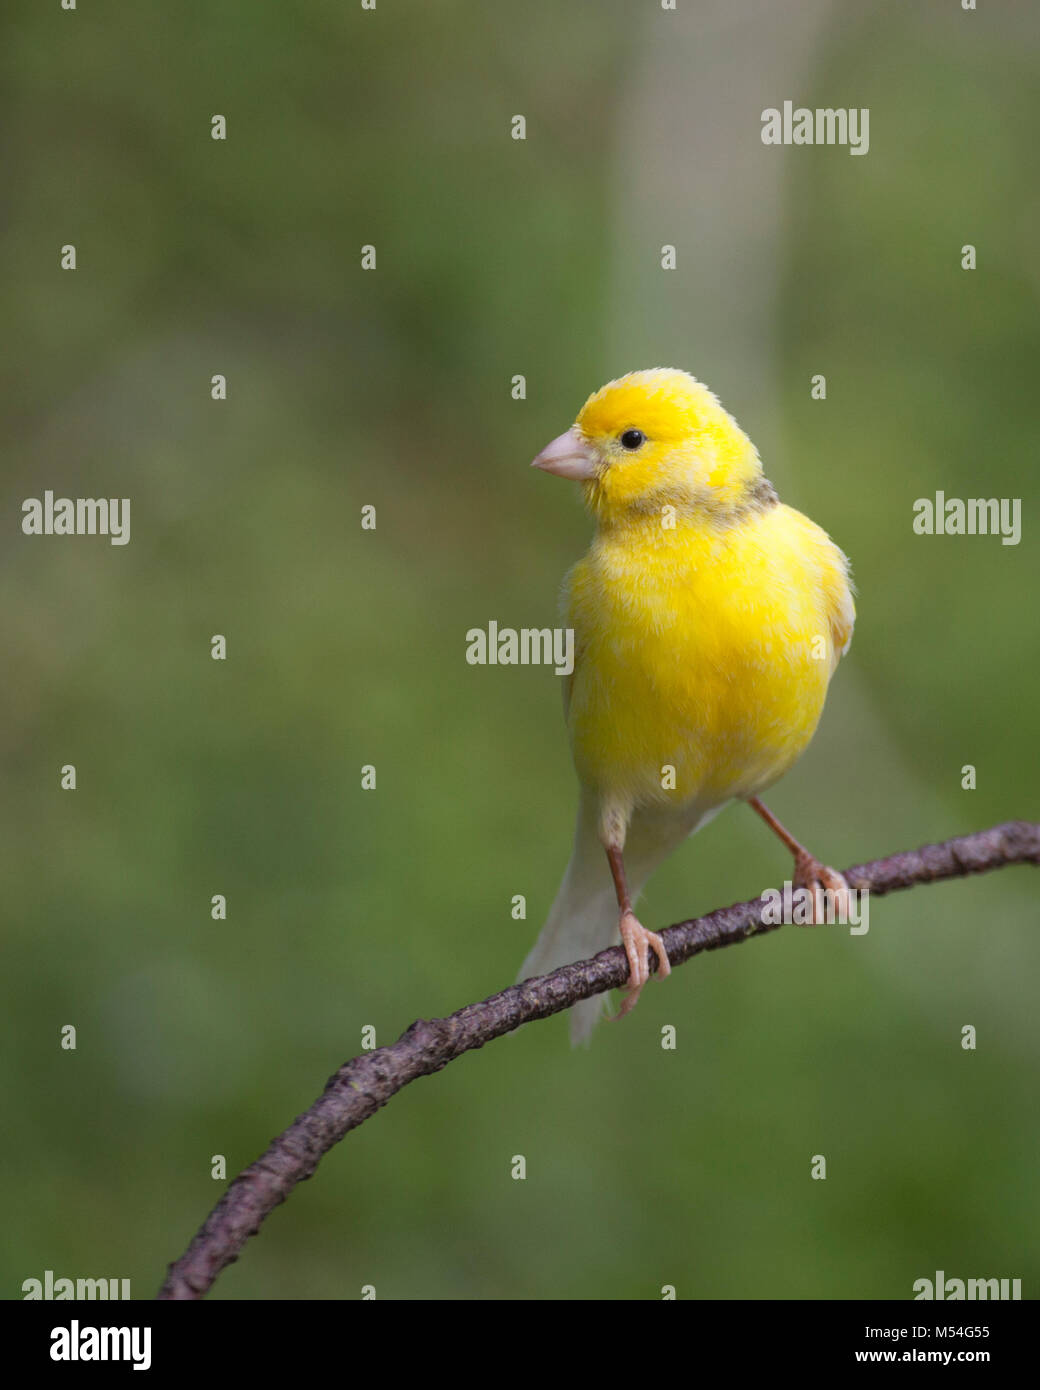 Wild canary (Serinus canaria) descended from pet birds released on Midway Atoll over a century ago by Commercial - Stock Image